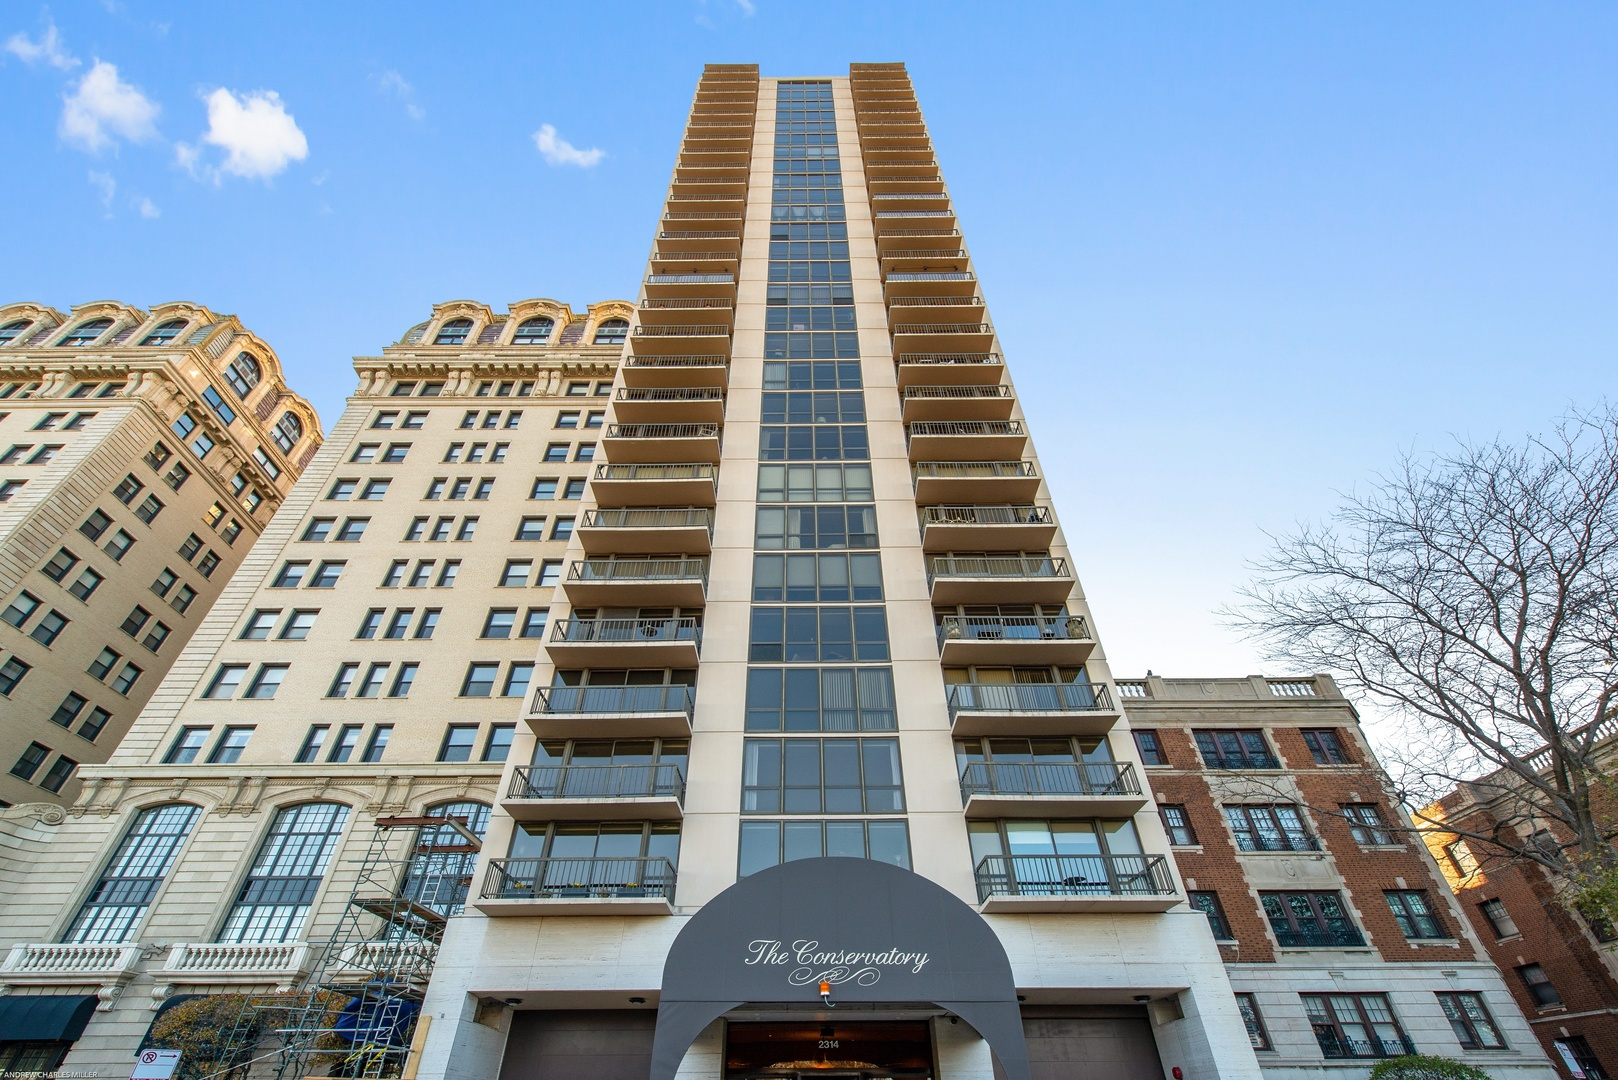 2314 North Lincoln Park West Street, Chicago-Near West Side, Illinois